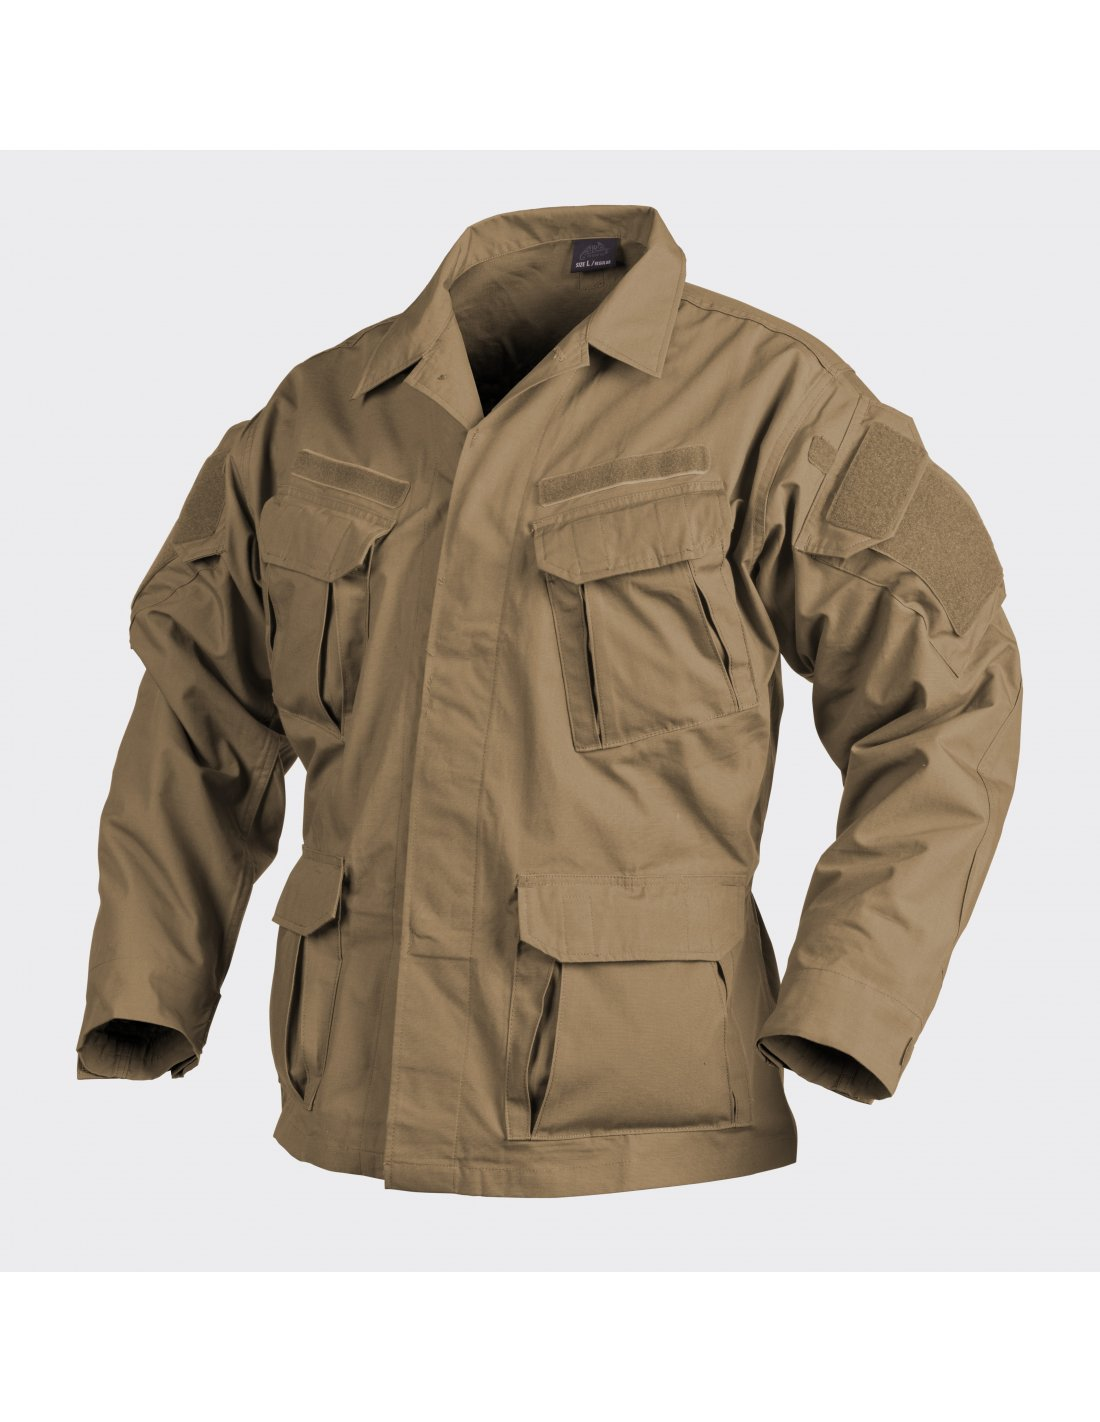 Helikon-Tex® SFU Next® (Special Forces Uniform Next) Shirt - Ripstop ... 6aba207885